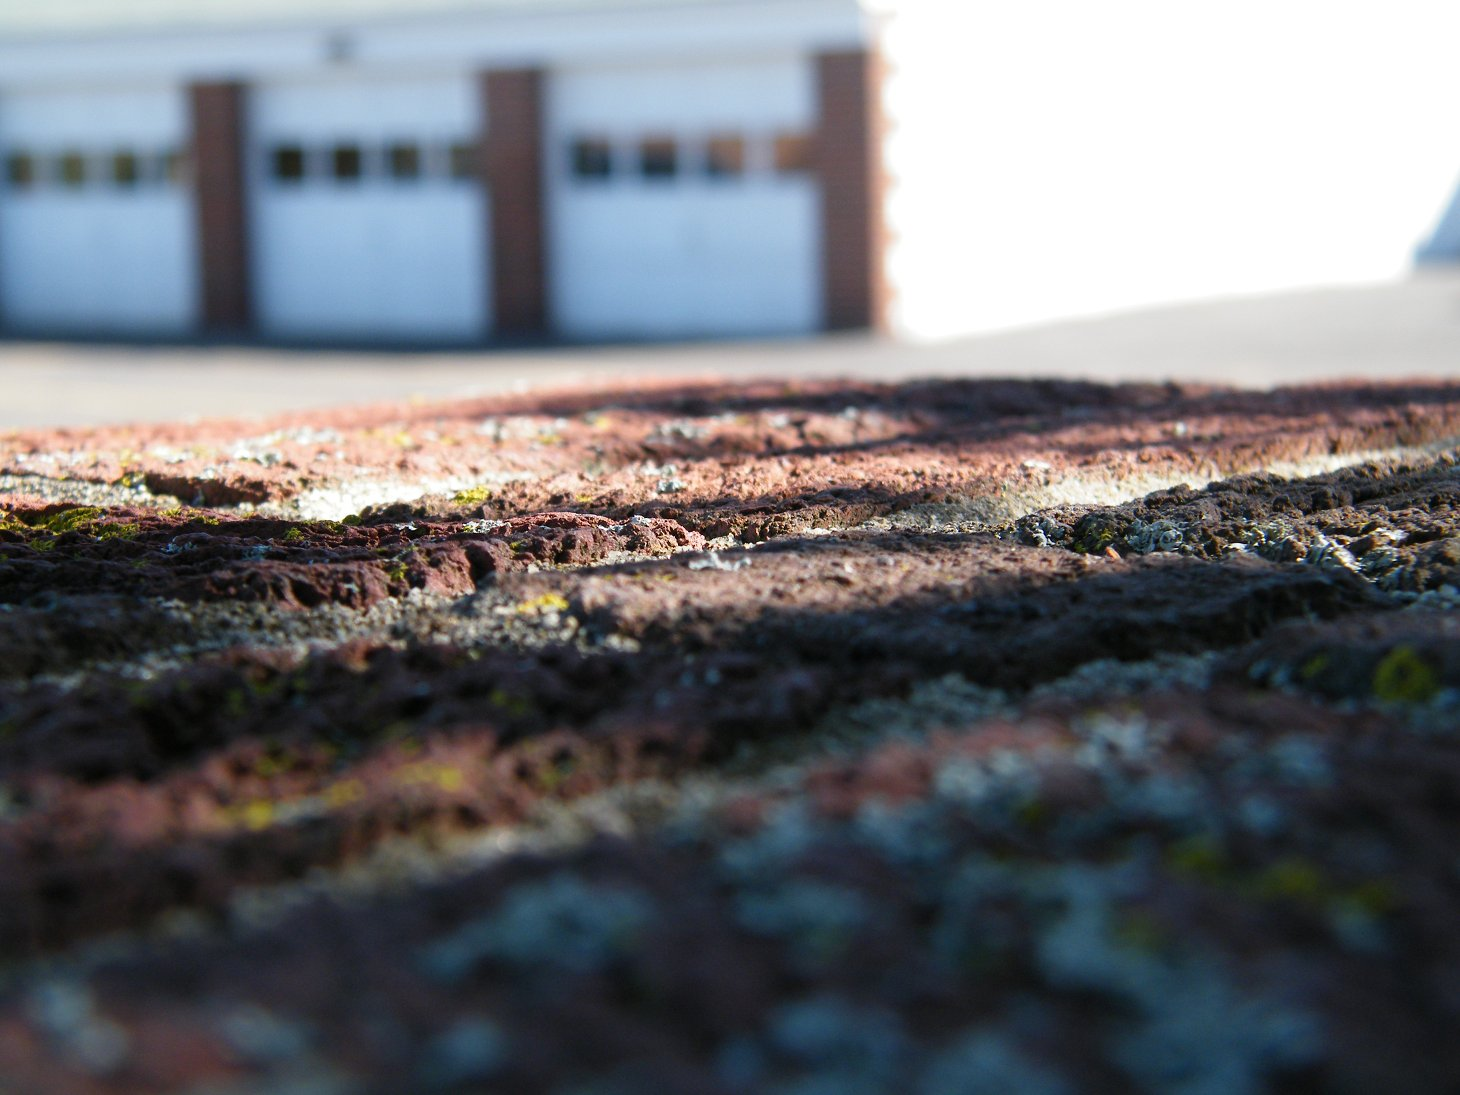 Macro Scene of Ground with Garage Background